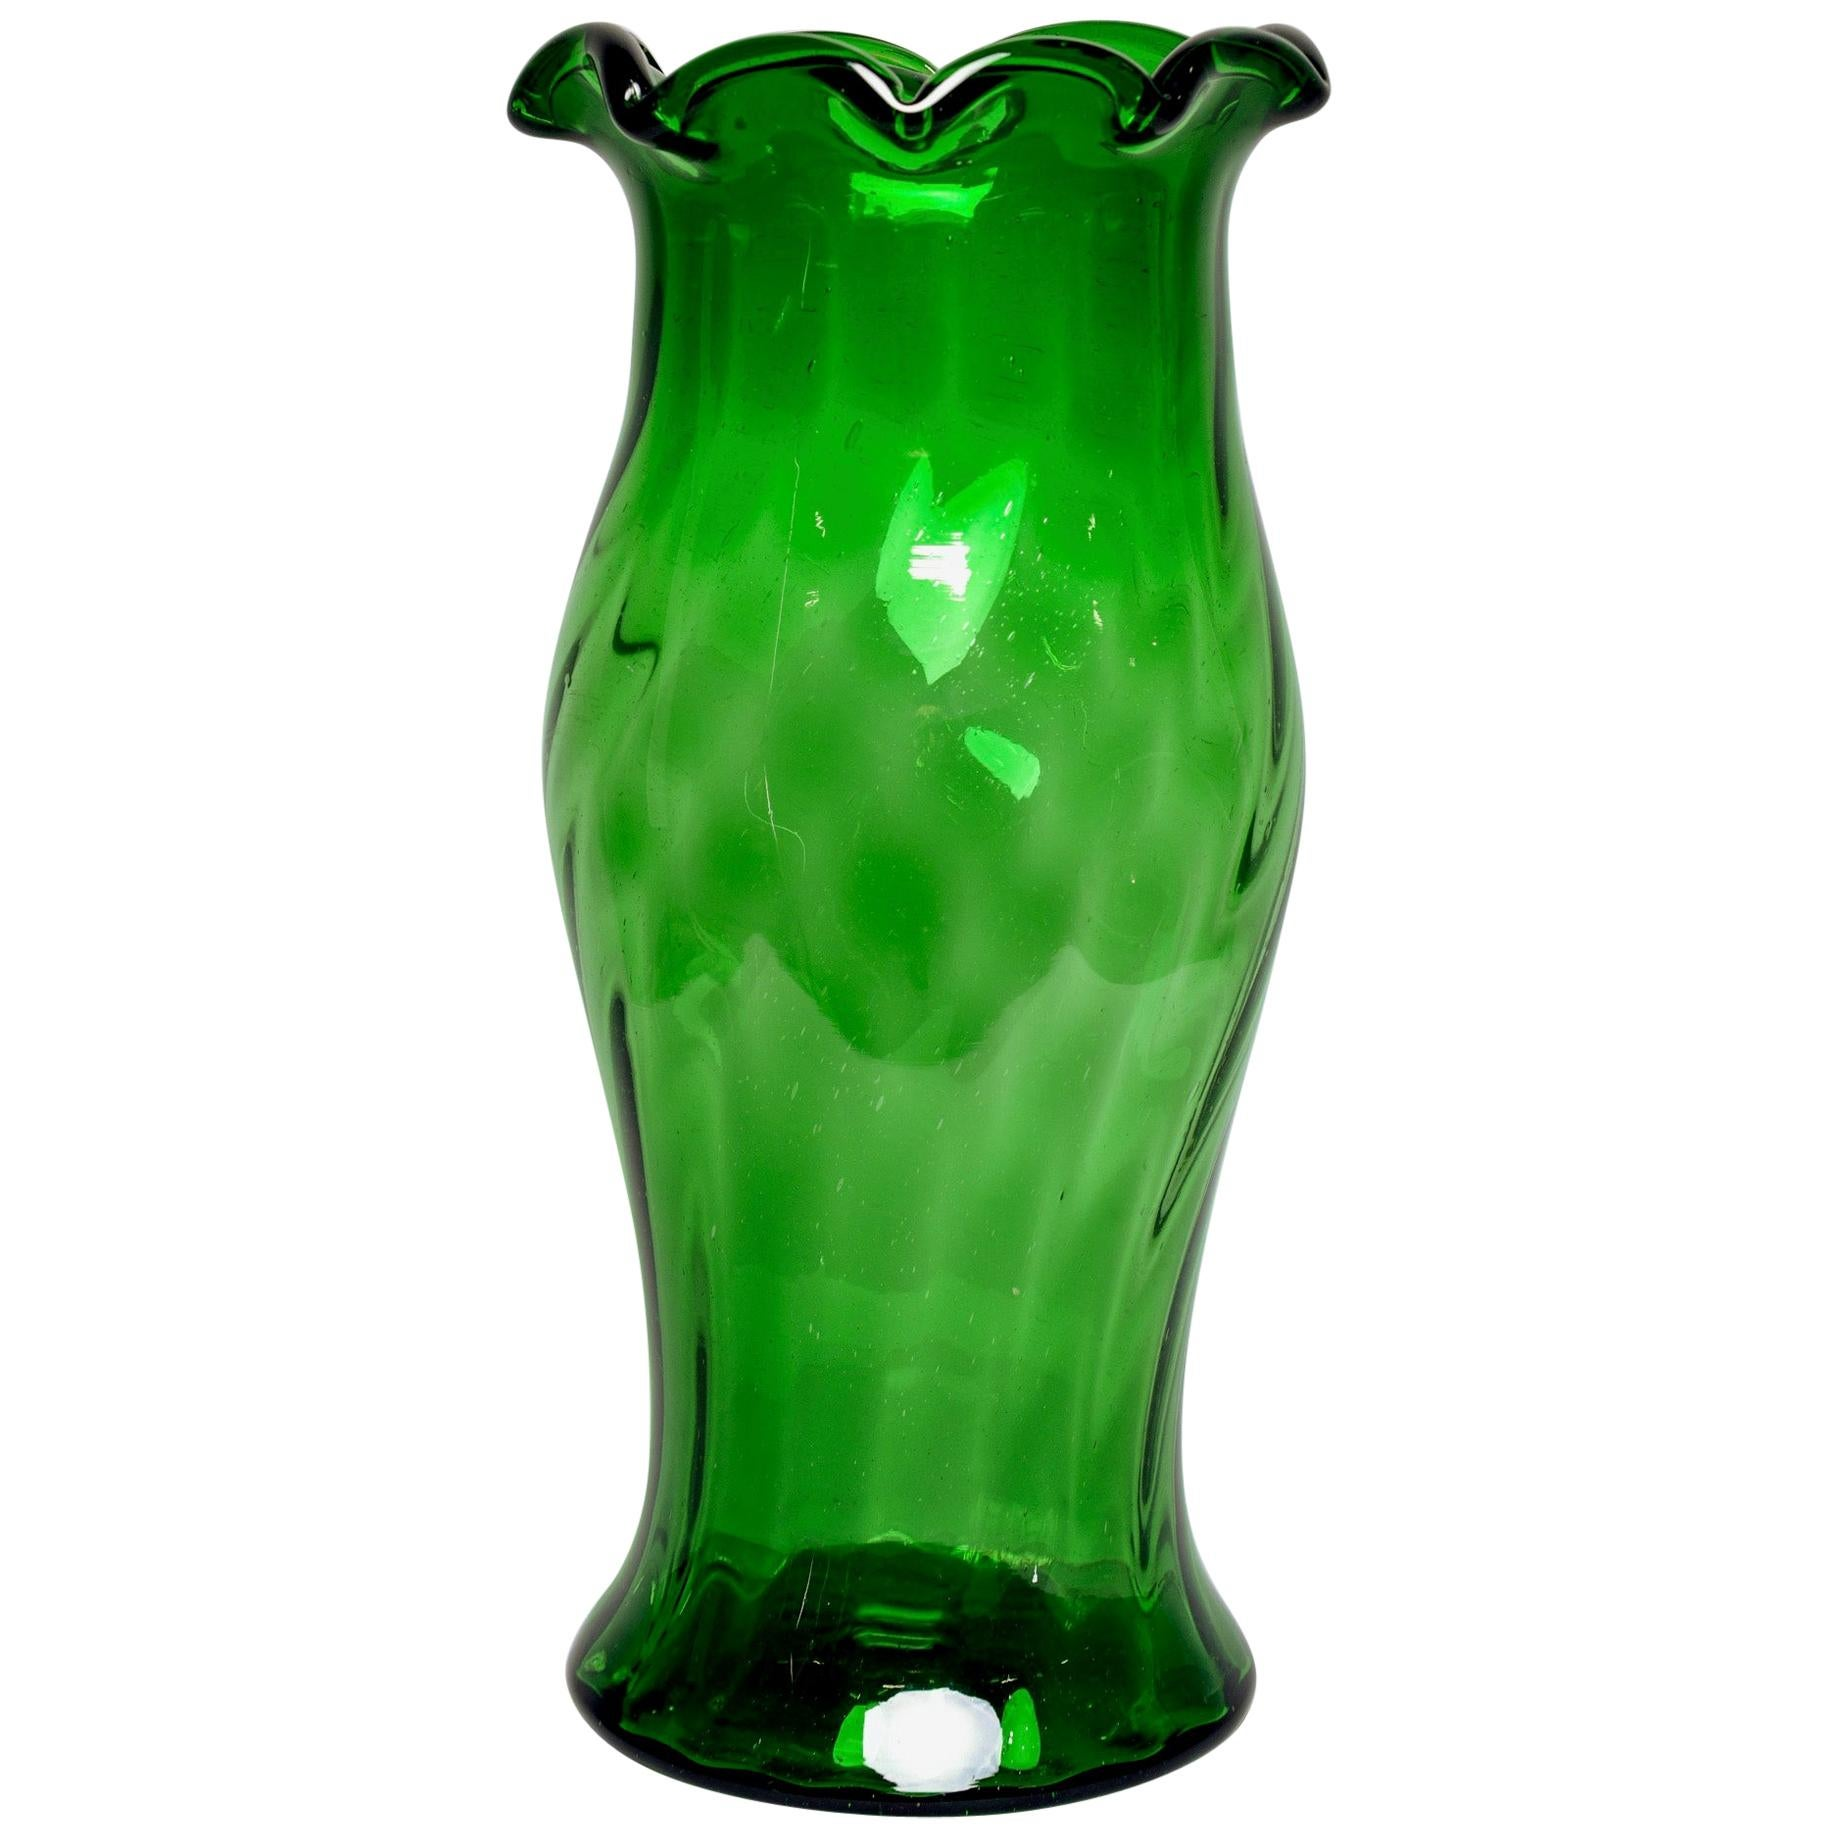 Tall Midcentury European Green Art Glass Vase